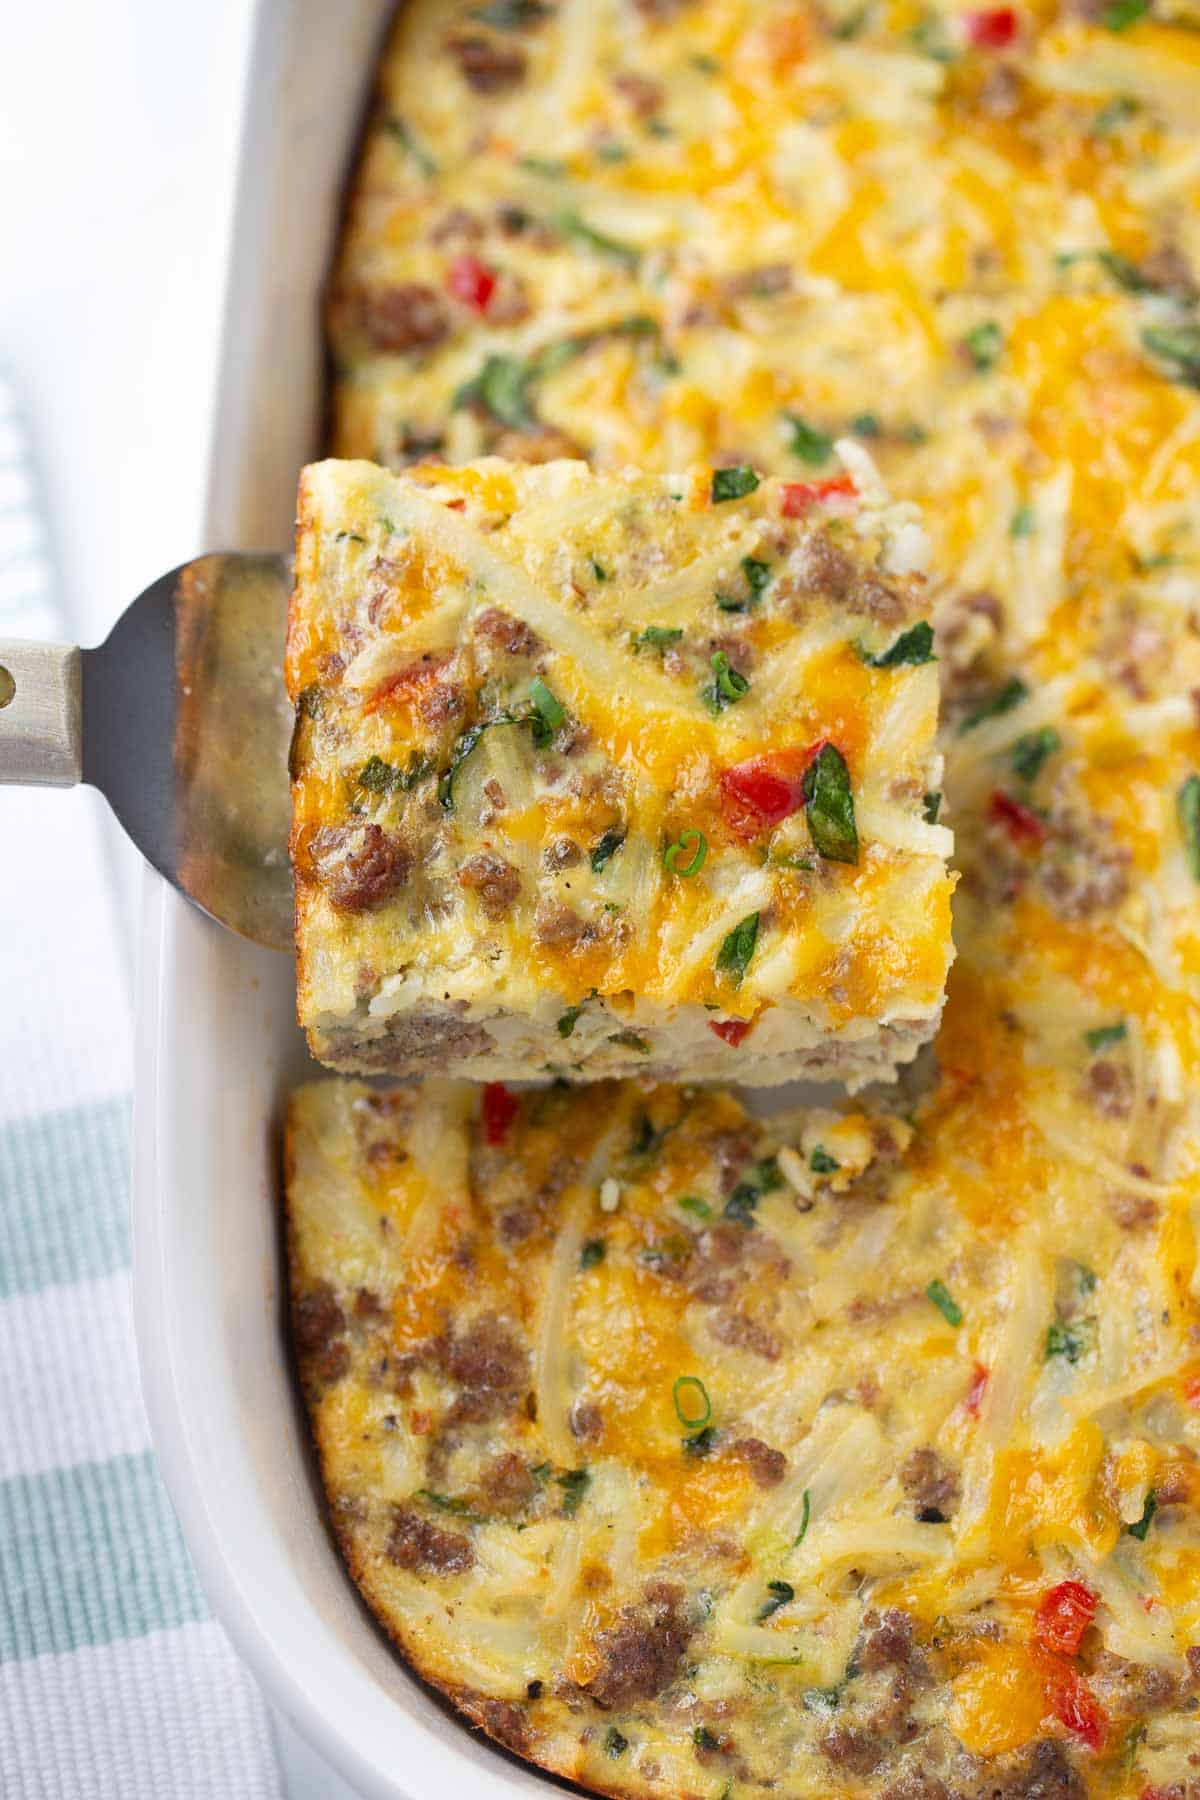 breakfast casserole being served from white casserole dish with spatula